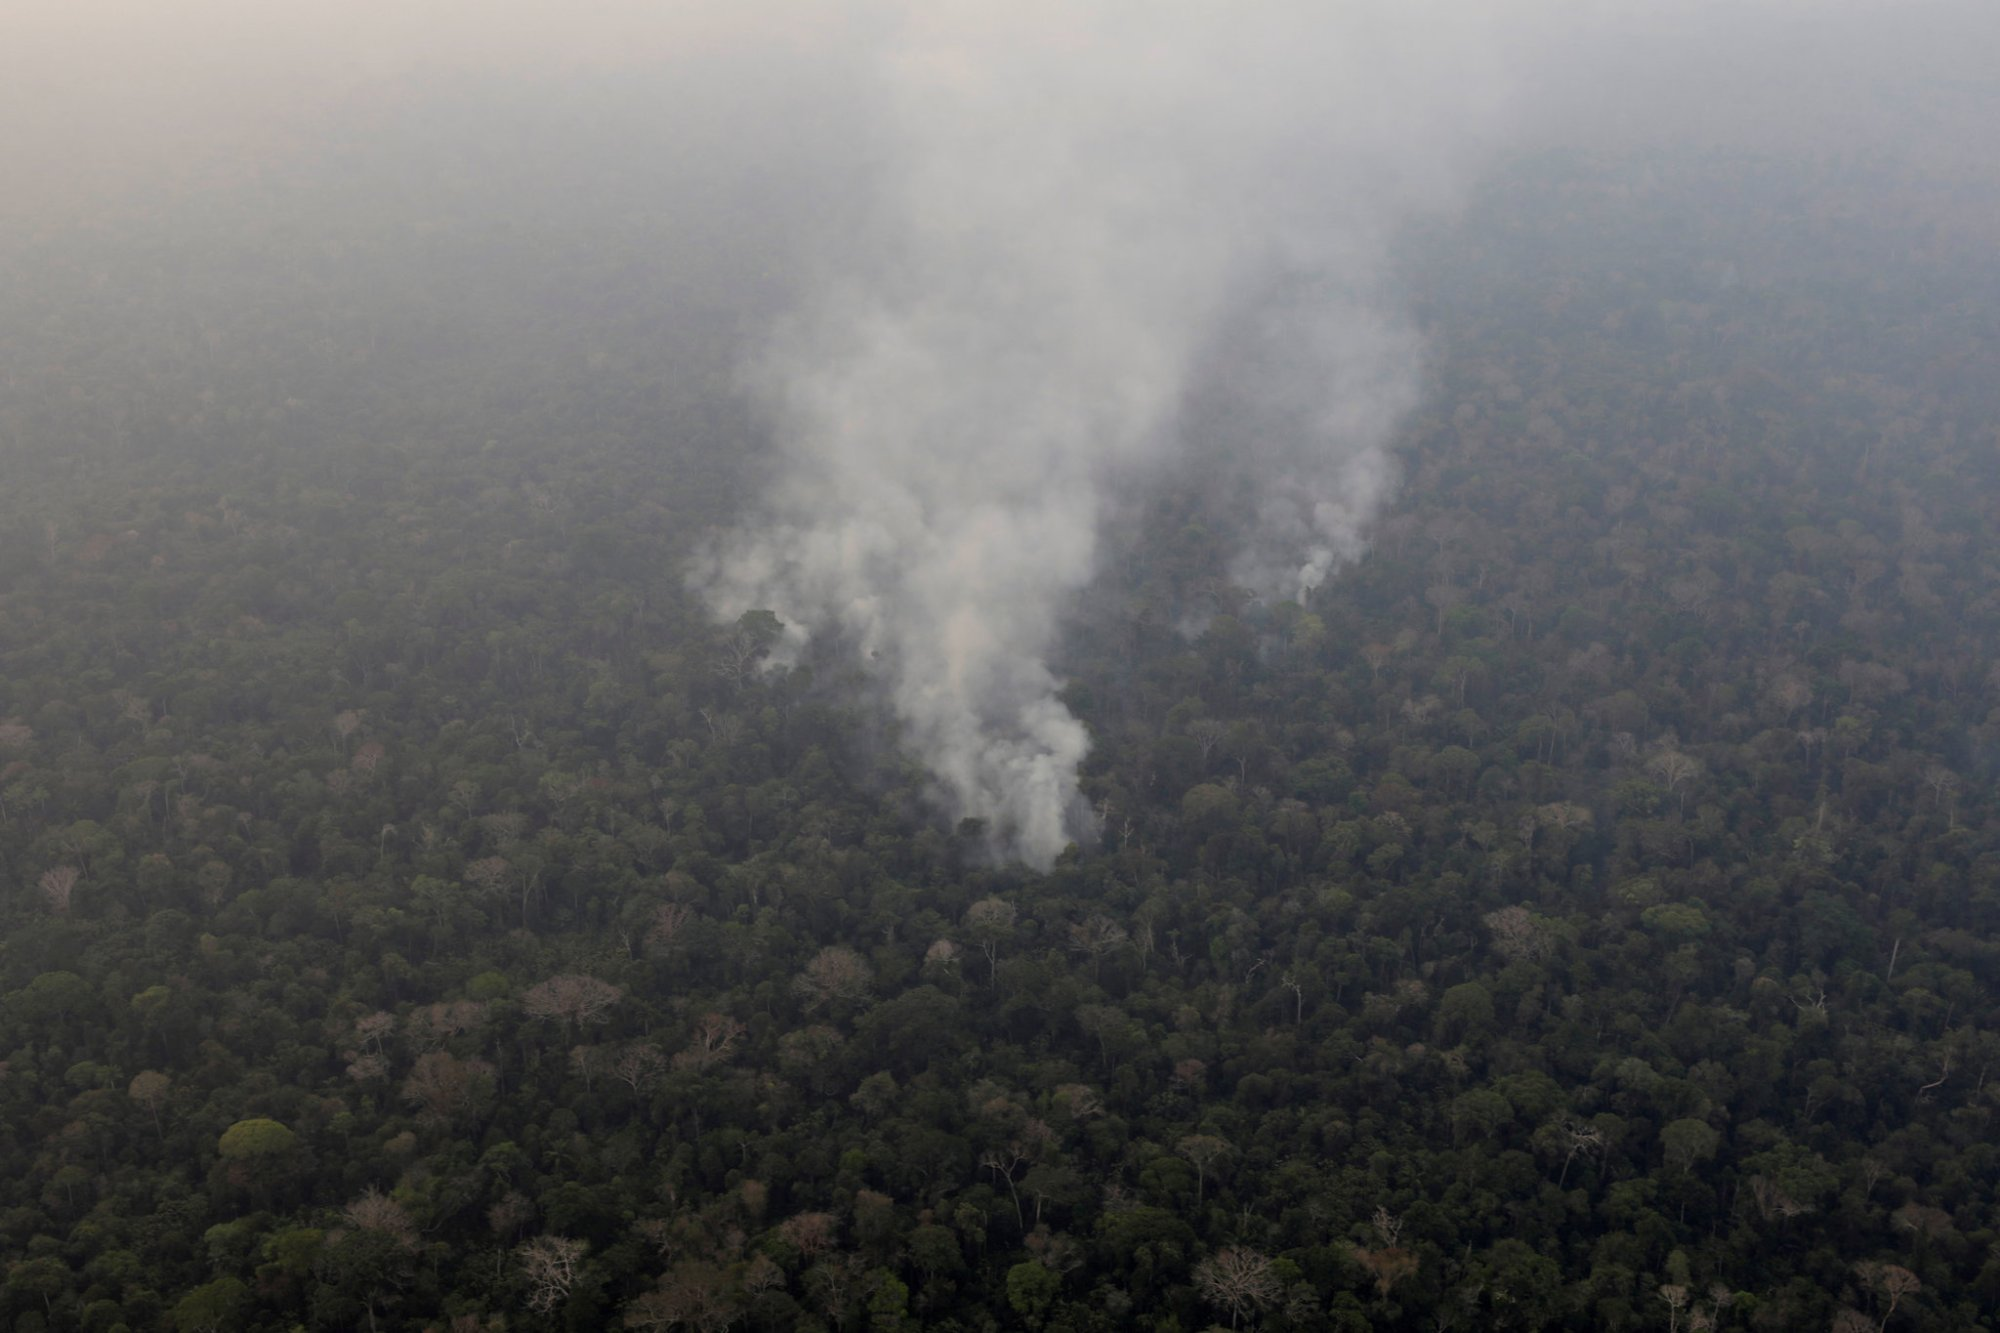 hight resolution of Amazon Rainforest Fires: Here's What's Really Happening - The New York Times